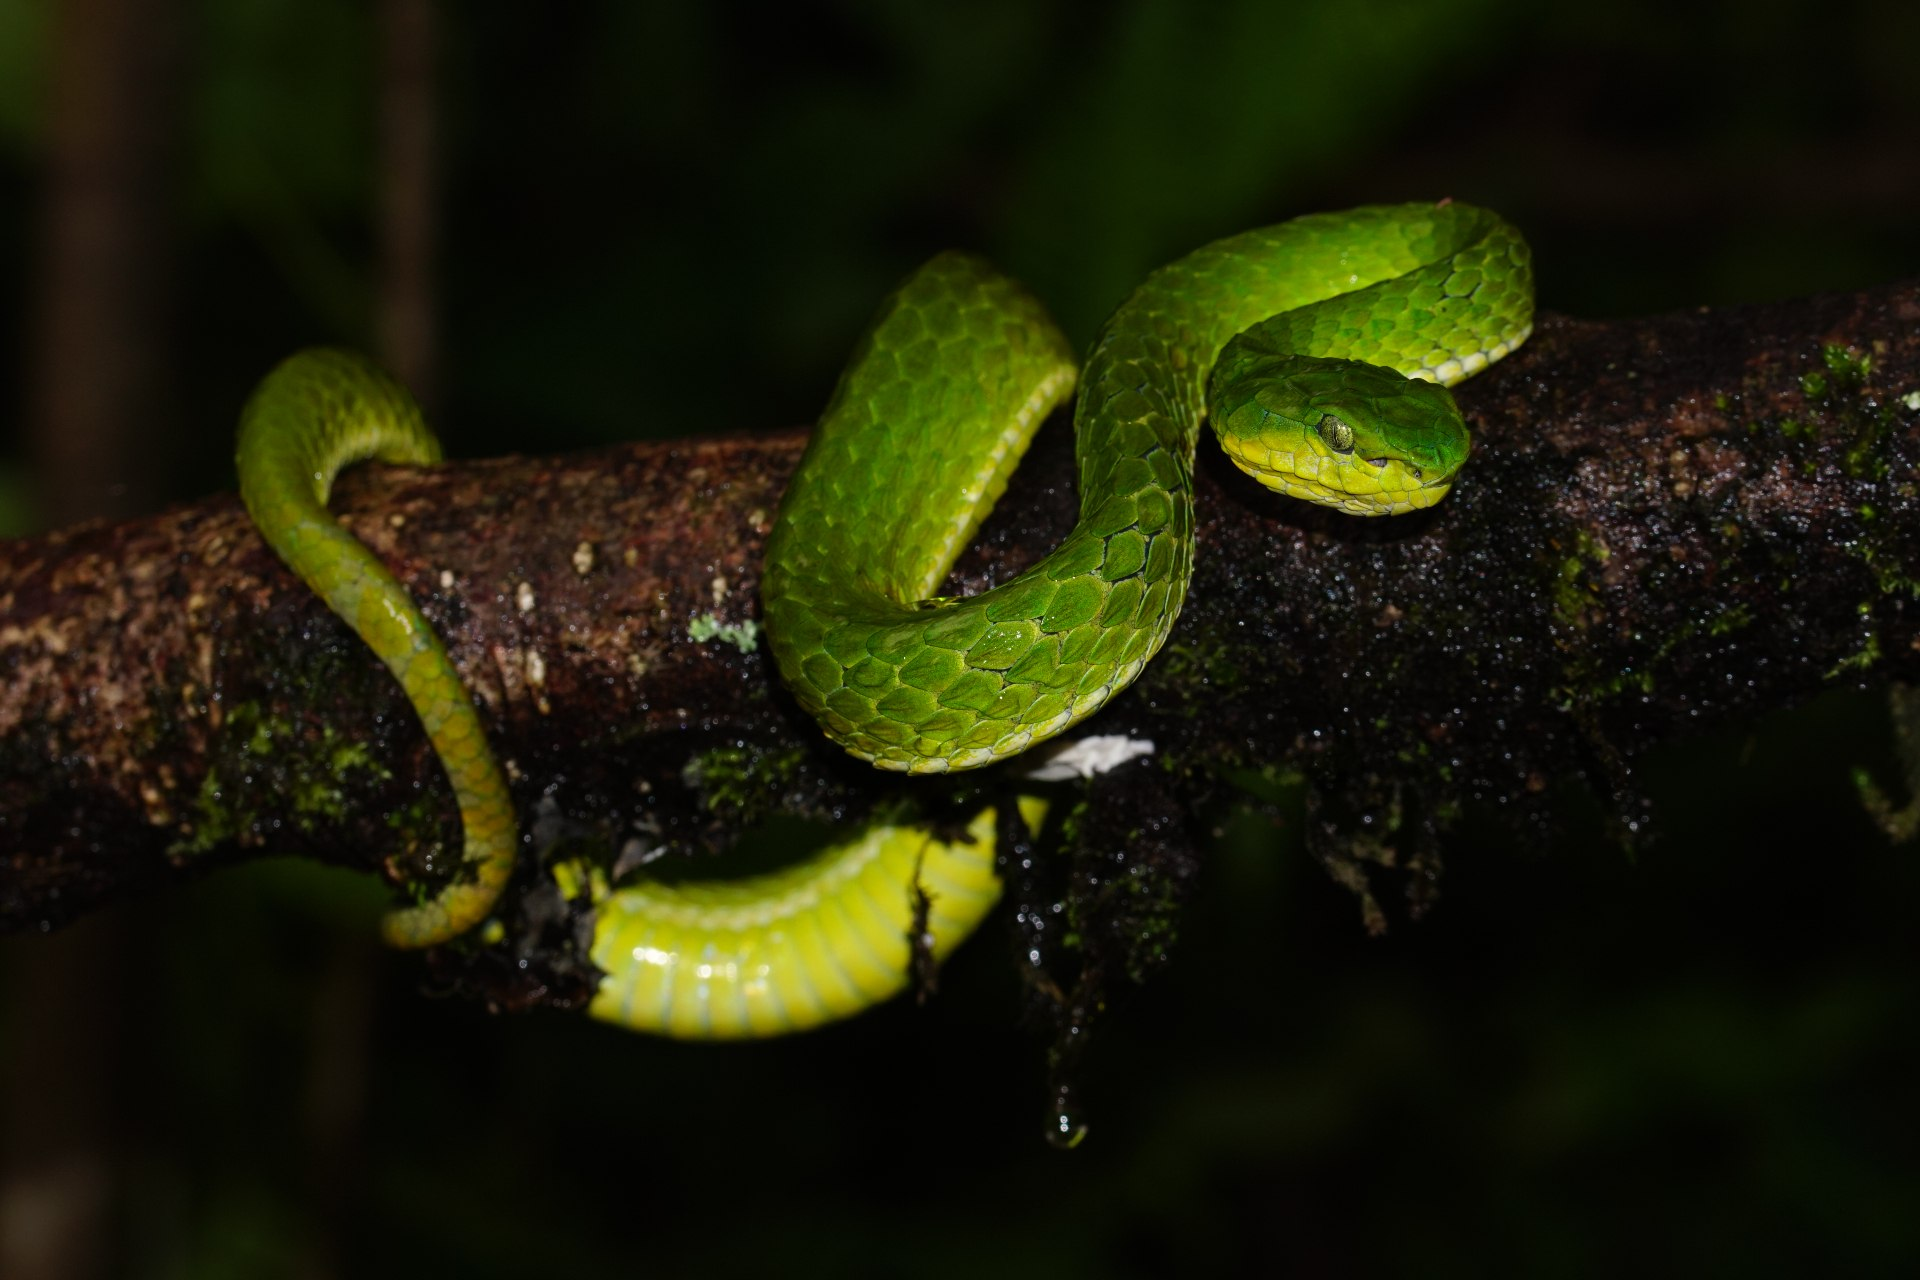 Large-scaled pit vipers are nocturnal and feed on frogs, rodents, and small birds, in the coffee and tea plantations of the Nilgiri Hills they inhabit. They get their name from their larger-than-normal scales. Photo: Omcar Pai